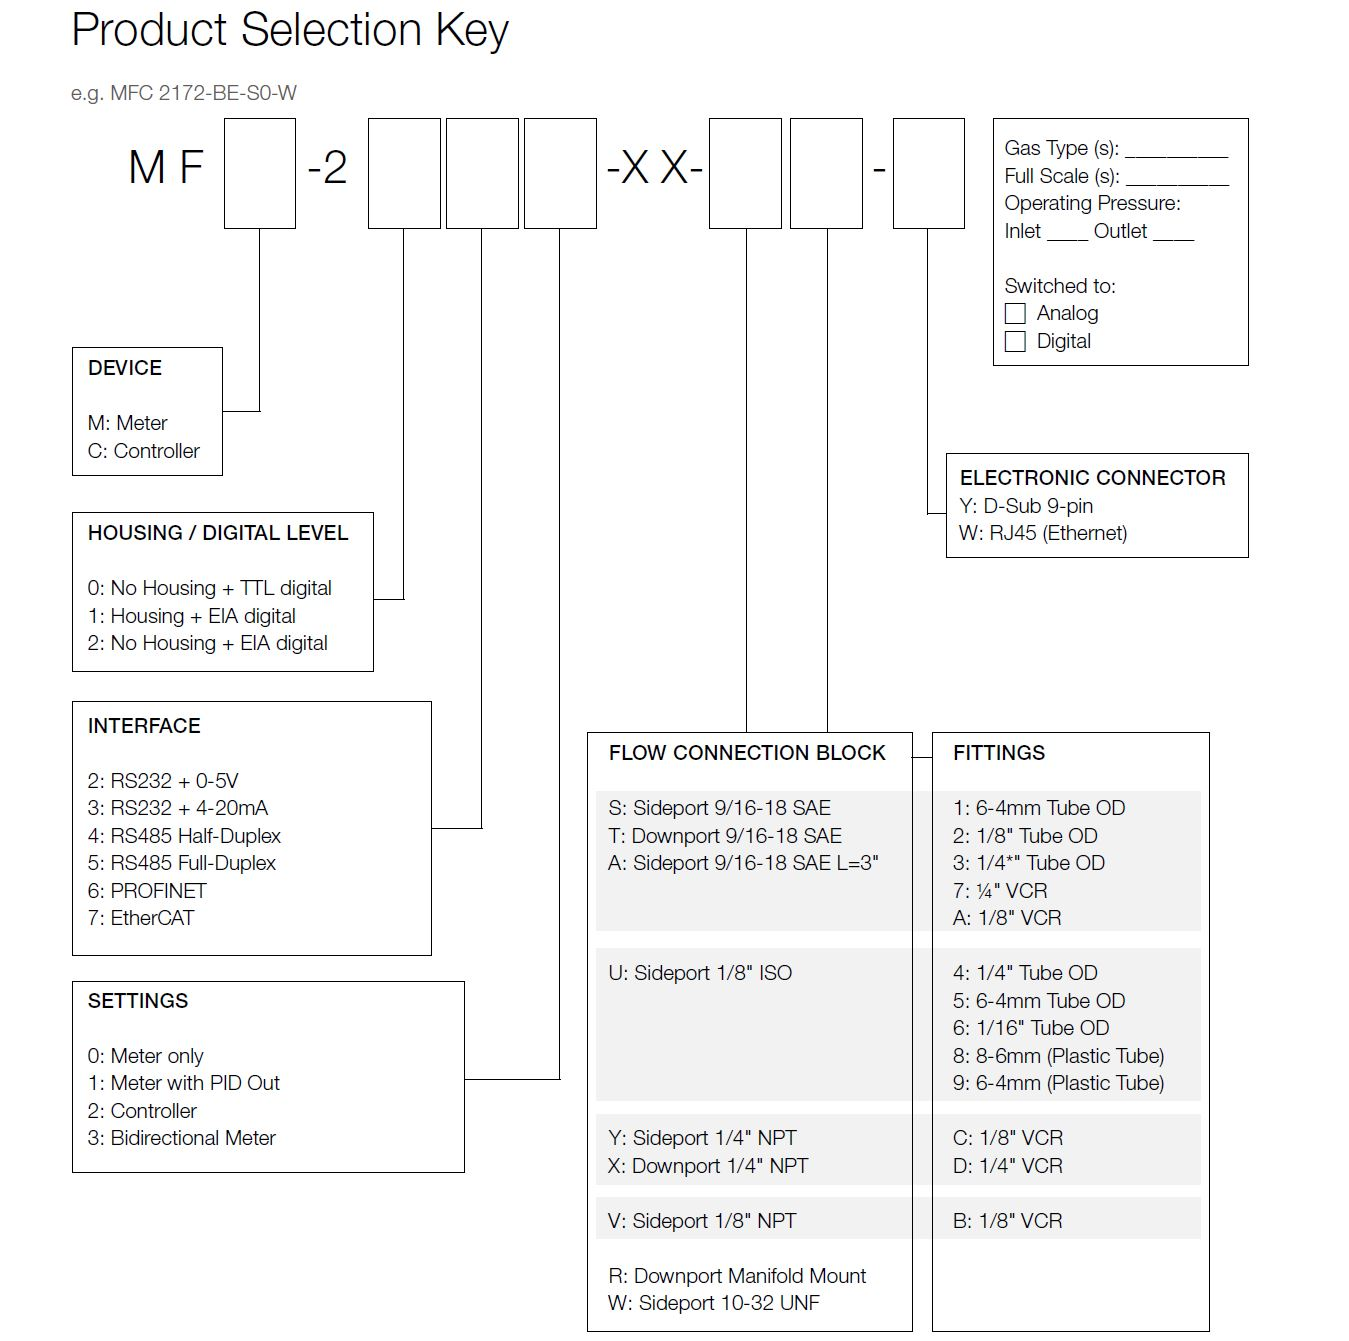 Axetris Product Selection Key